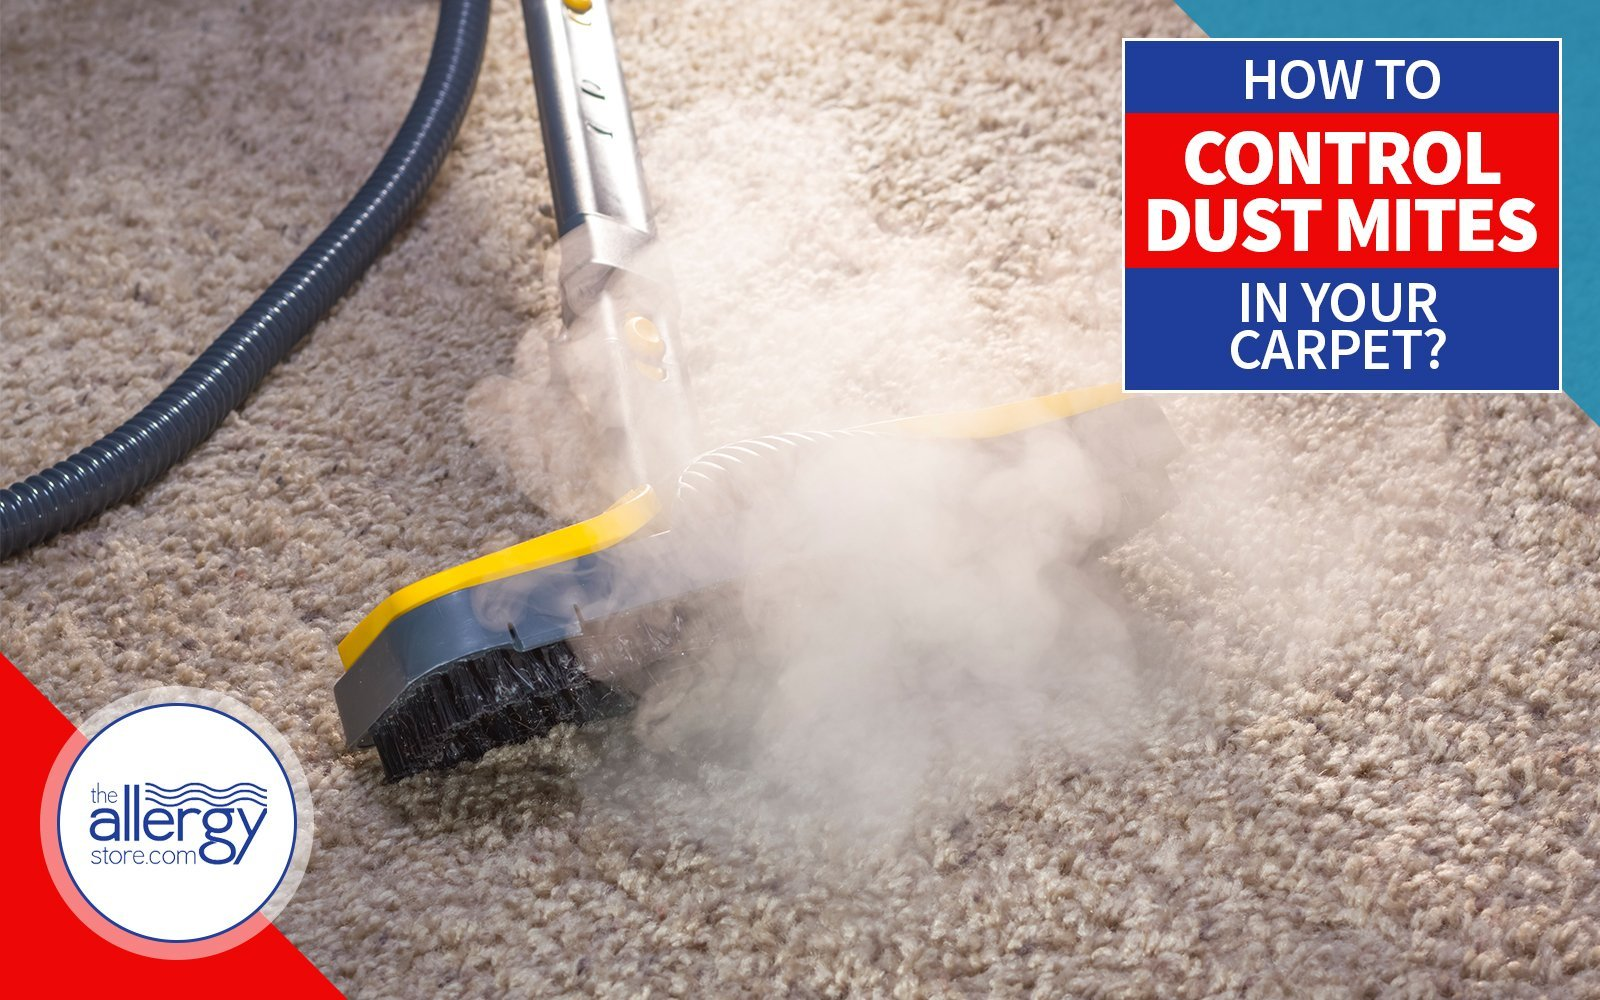 Best way to control dust mites in your carpeting